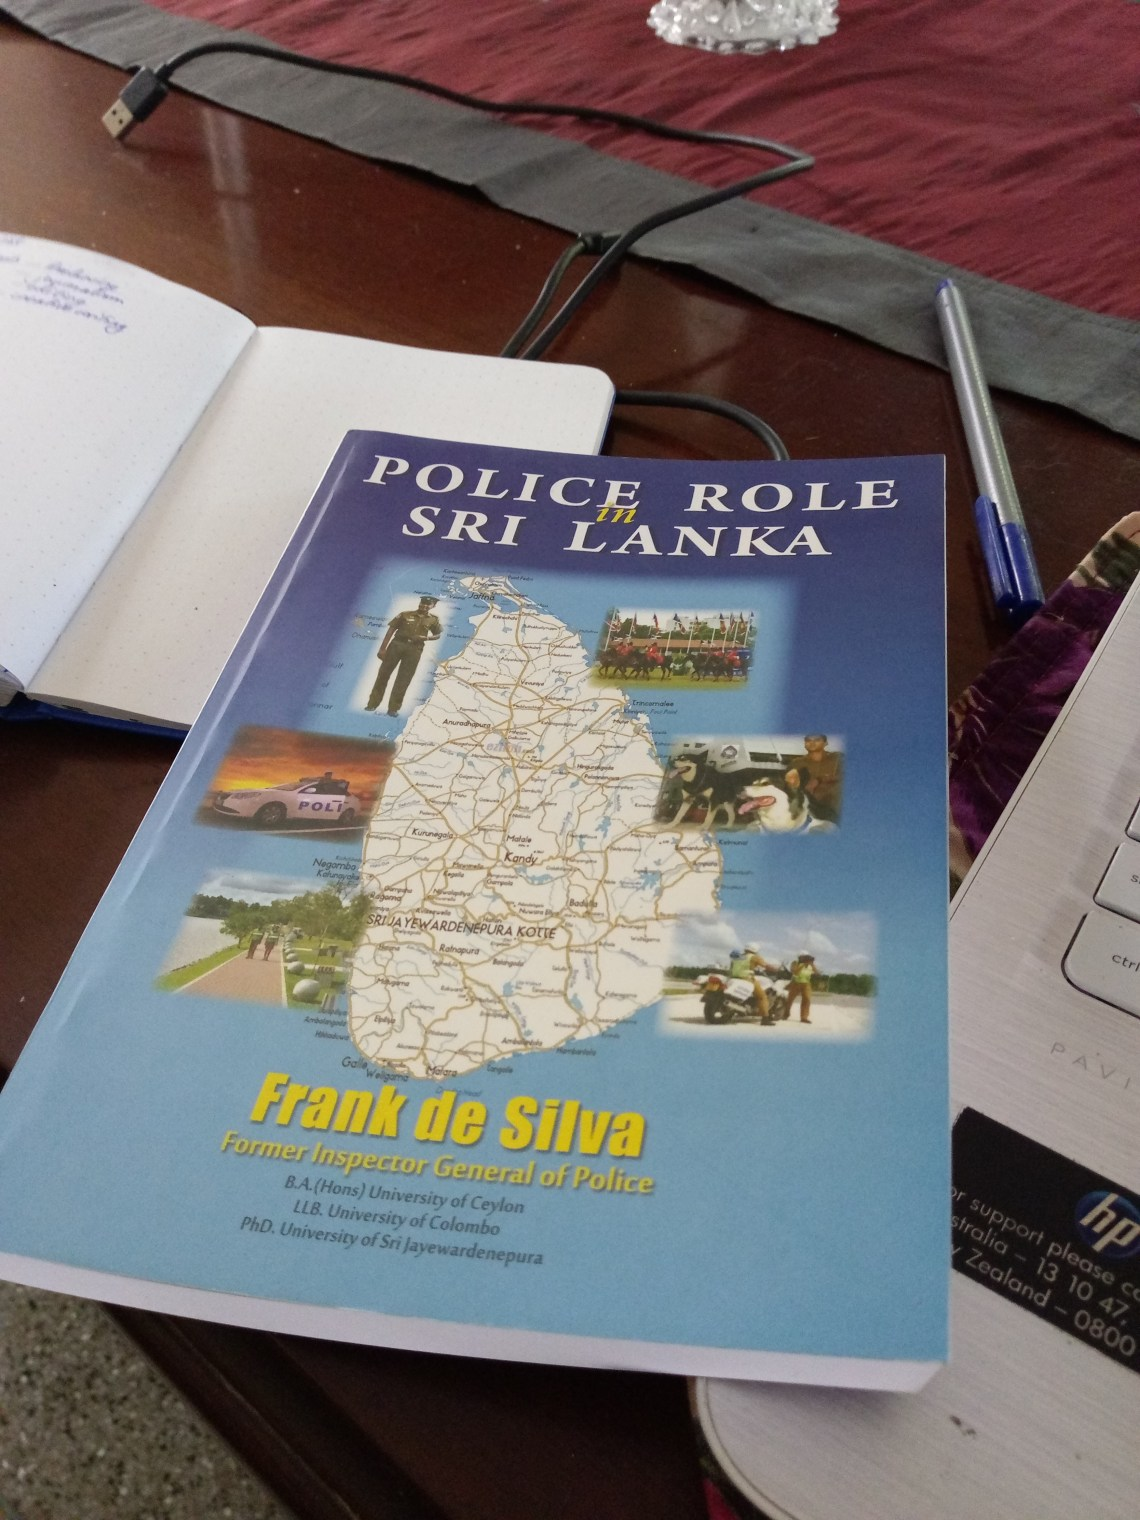 Latest piece of research for the foundation fellowship: the book titled Police in Sri Lanka by Frank de Silva